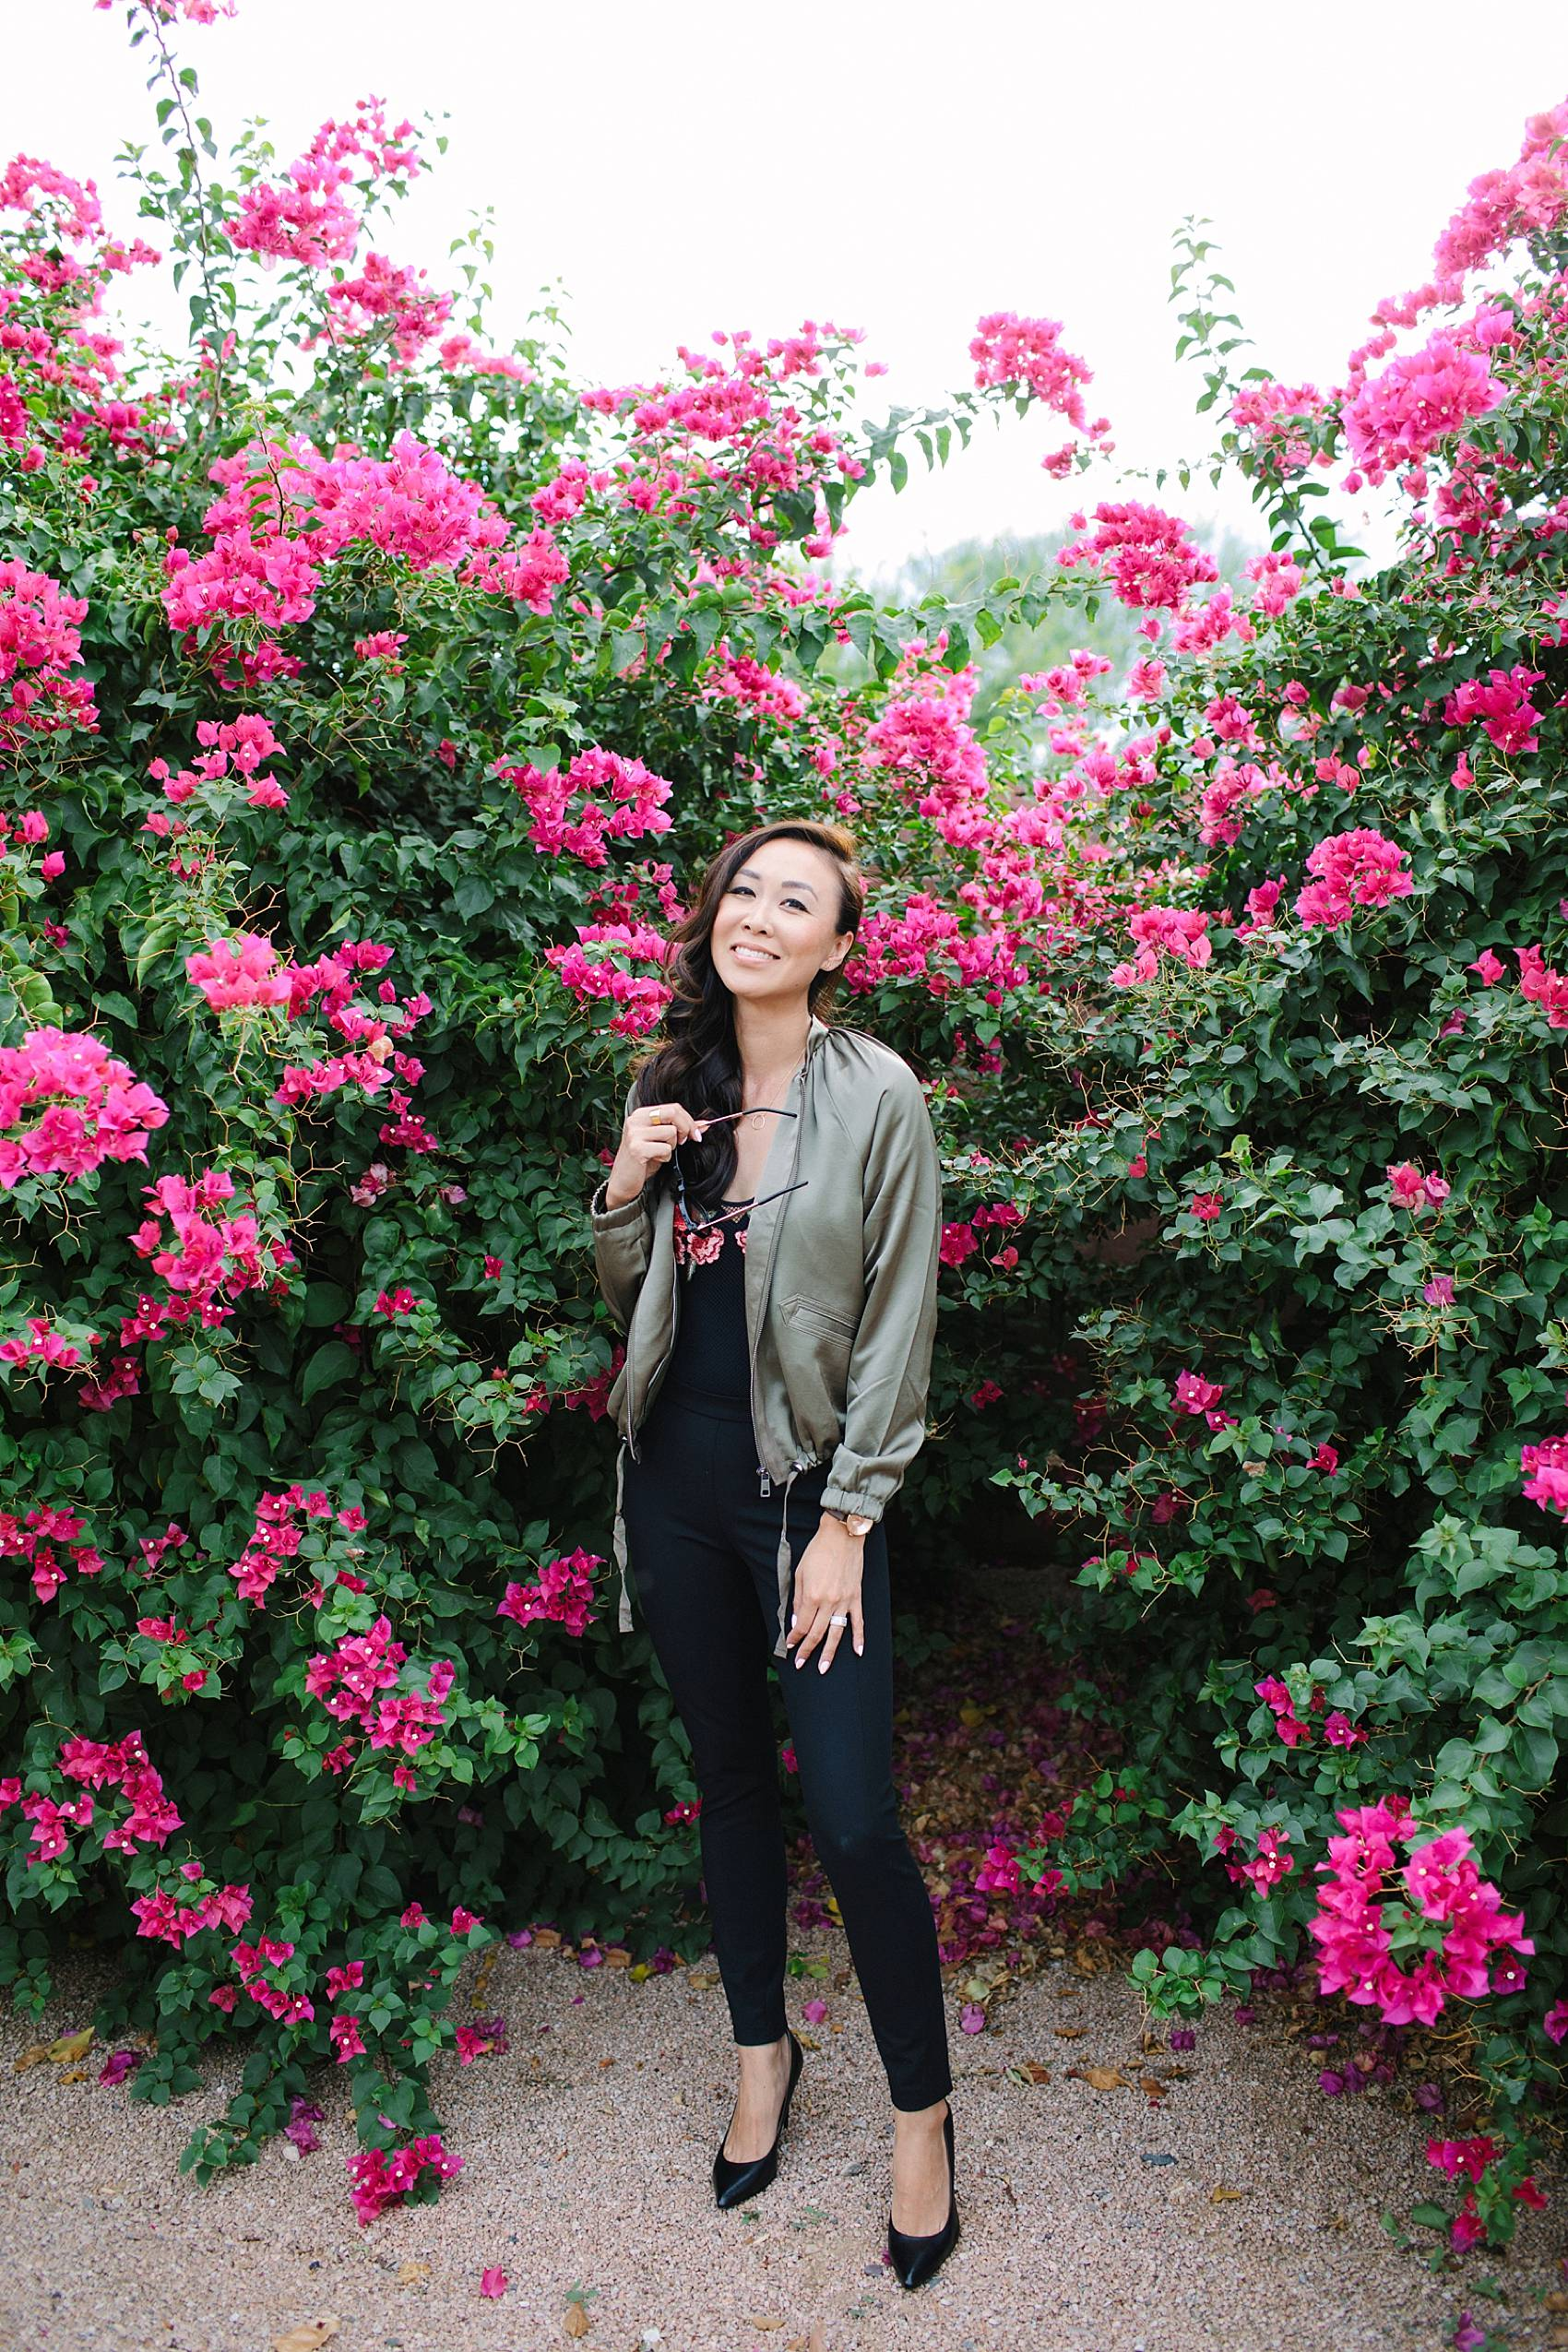 diana elizabeth lifestyle blogger in black devon-fit bi-stretch leggings and satin bomber jacket by banana republic standing in front of pink bougevvilla plants black netting bodysuit